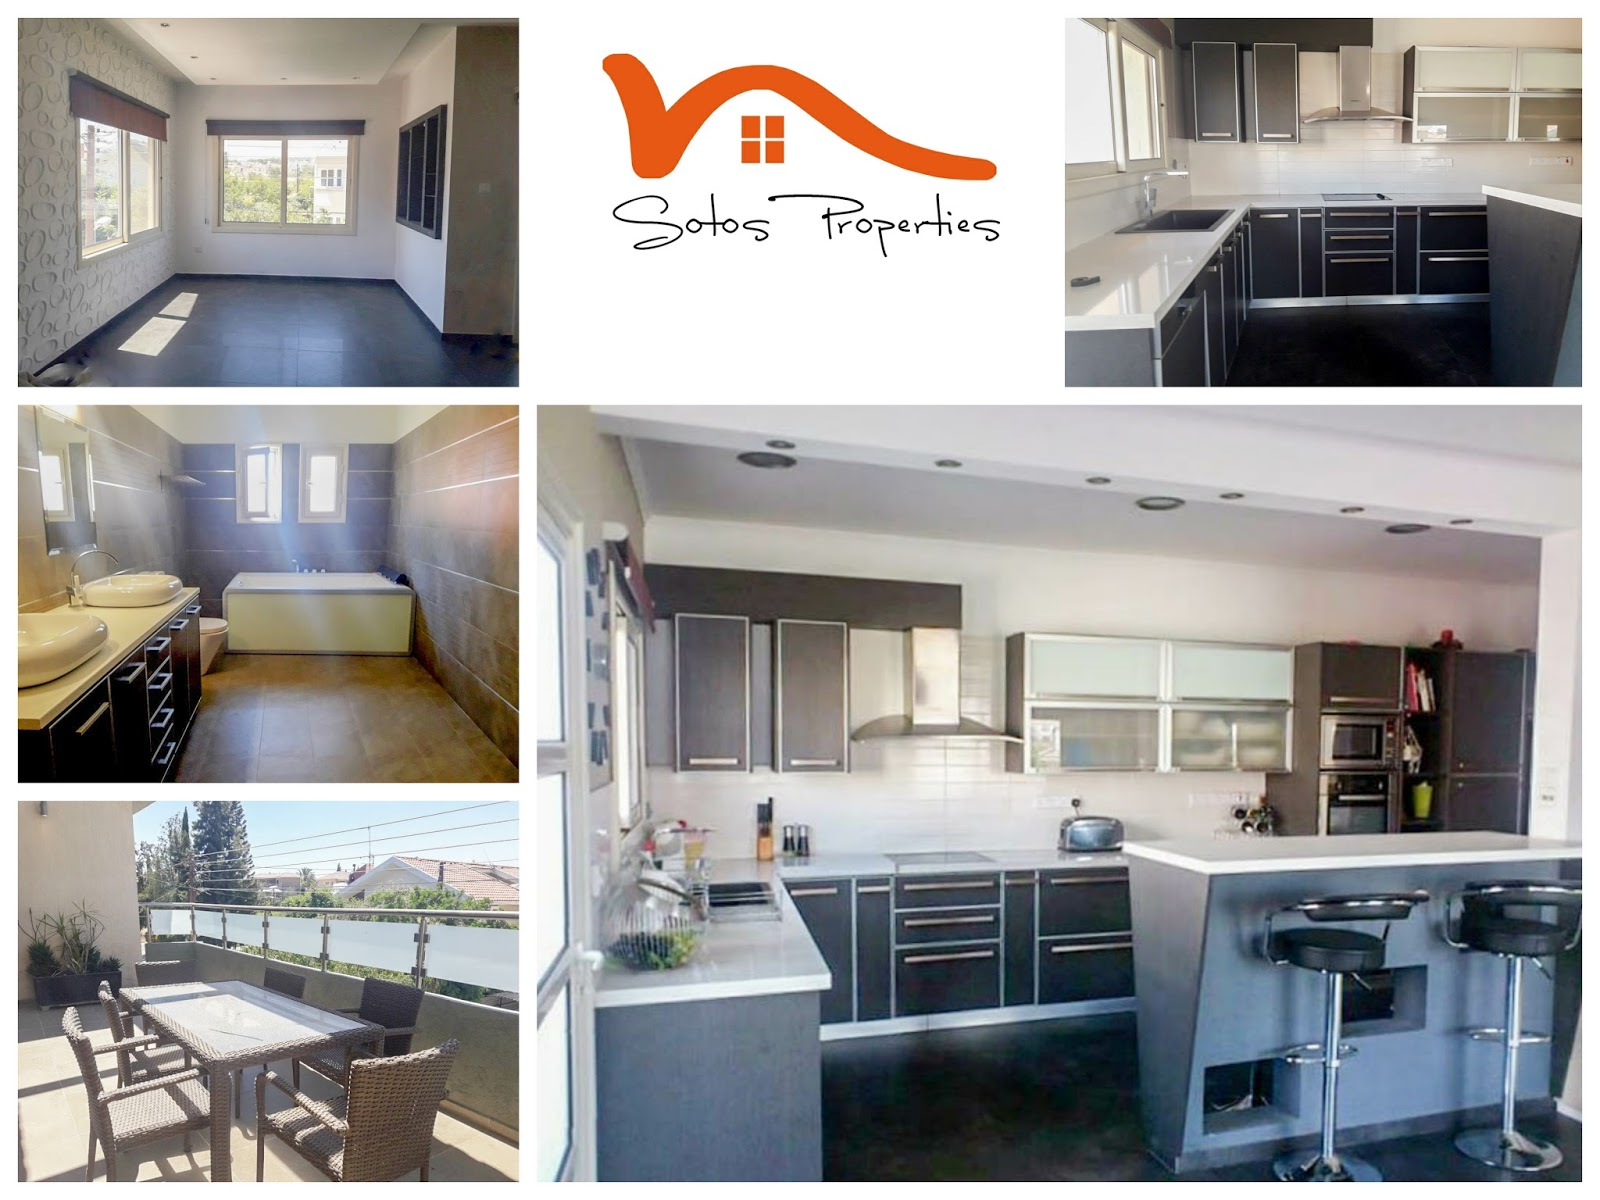 Houses for rent 4 bedrooms 2 bathrooms